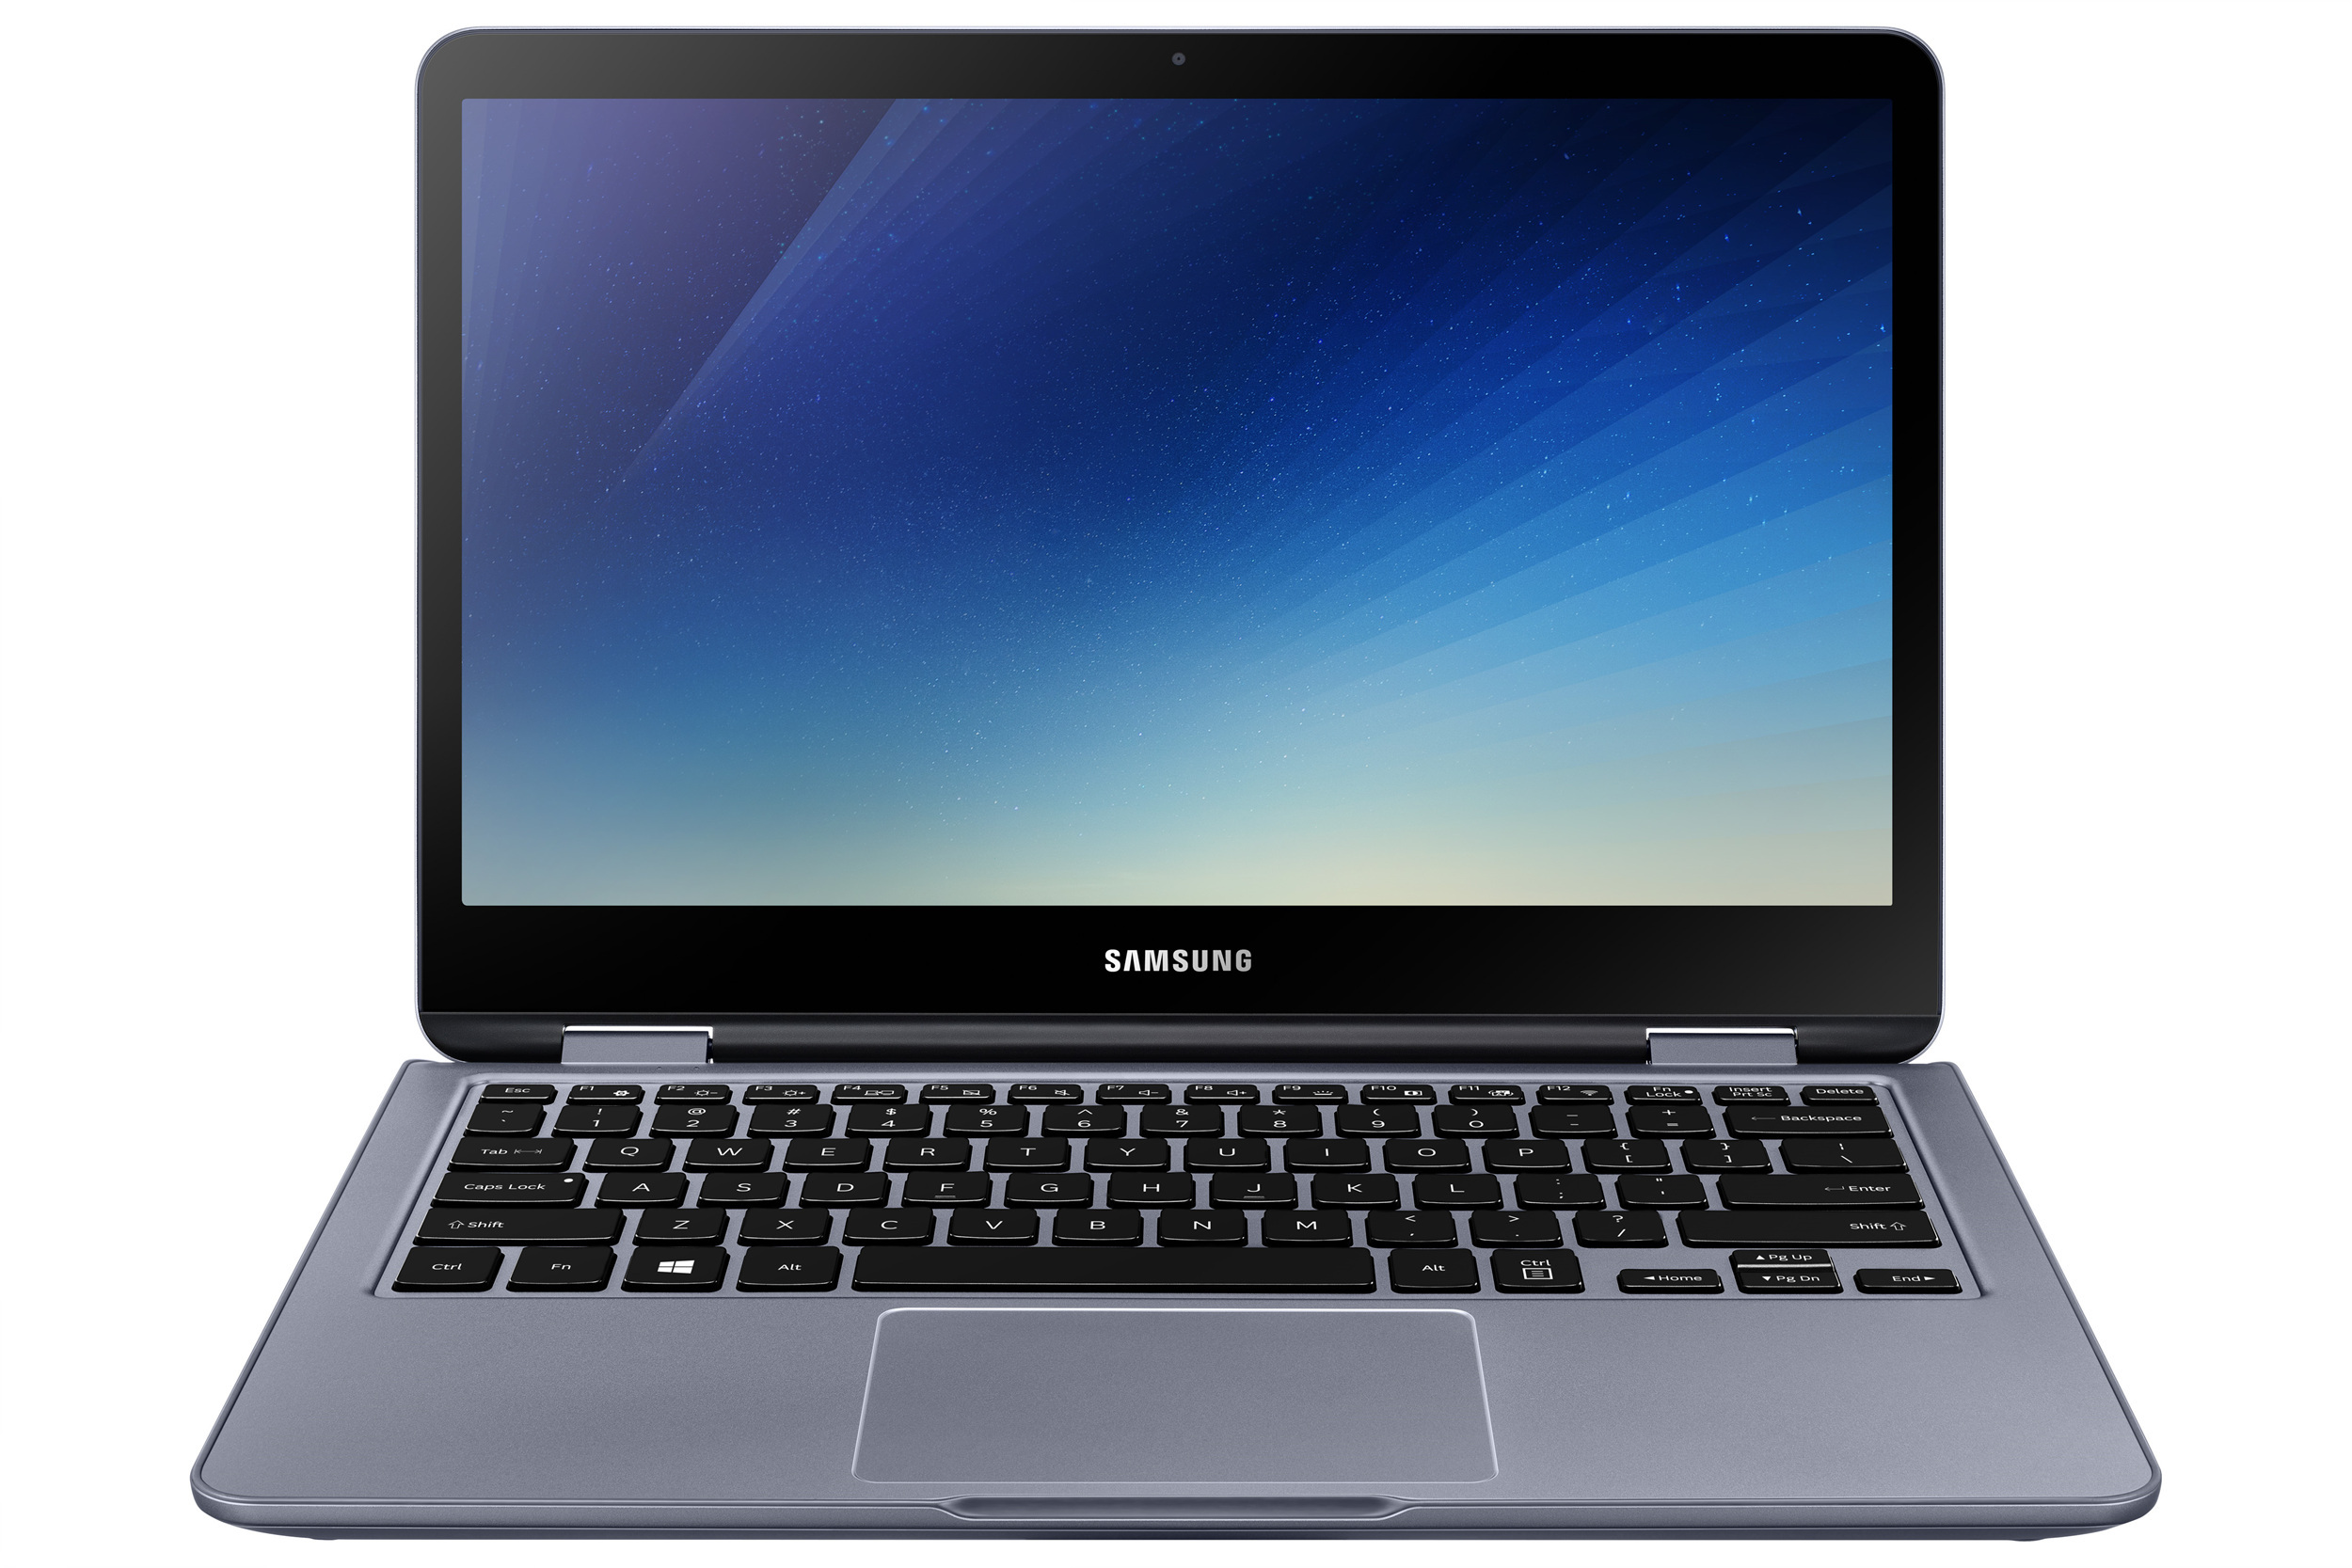 Samsung Introduces the New Notebook 7 Spin (2018), a